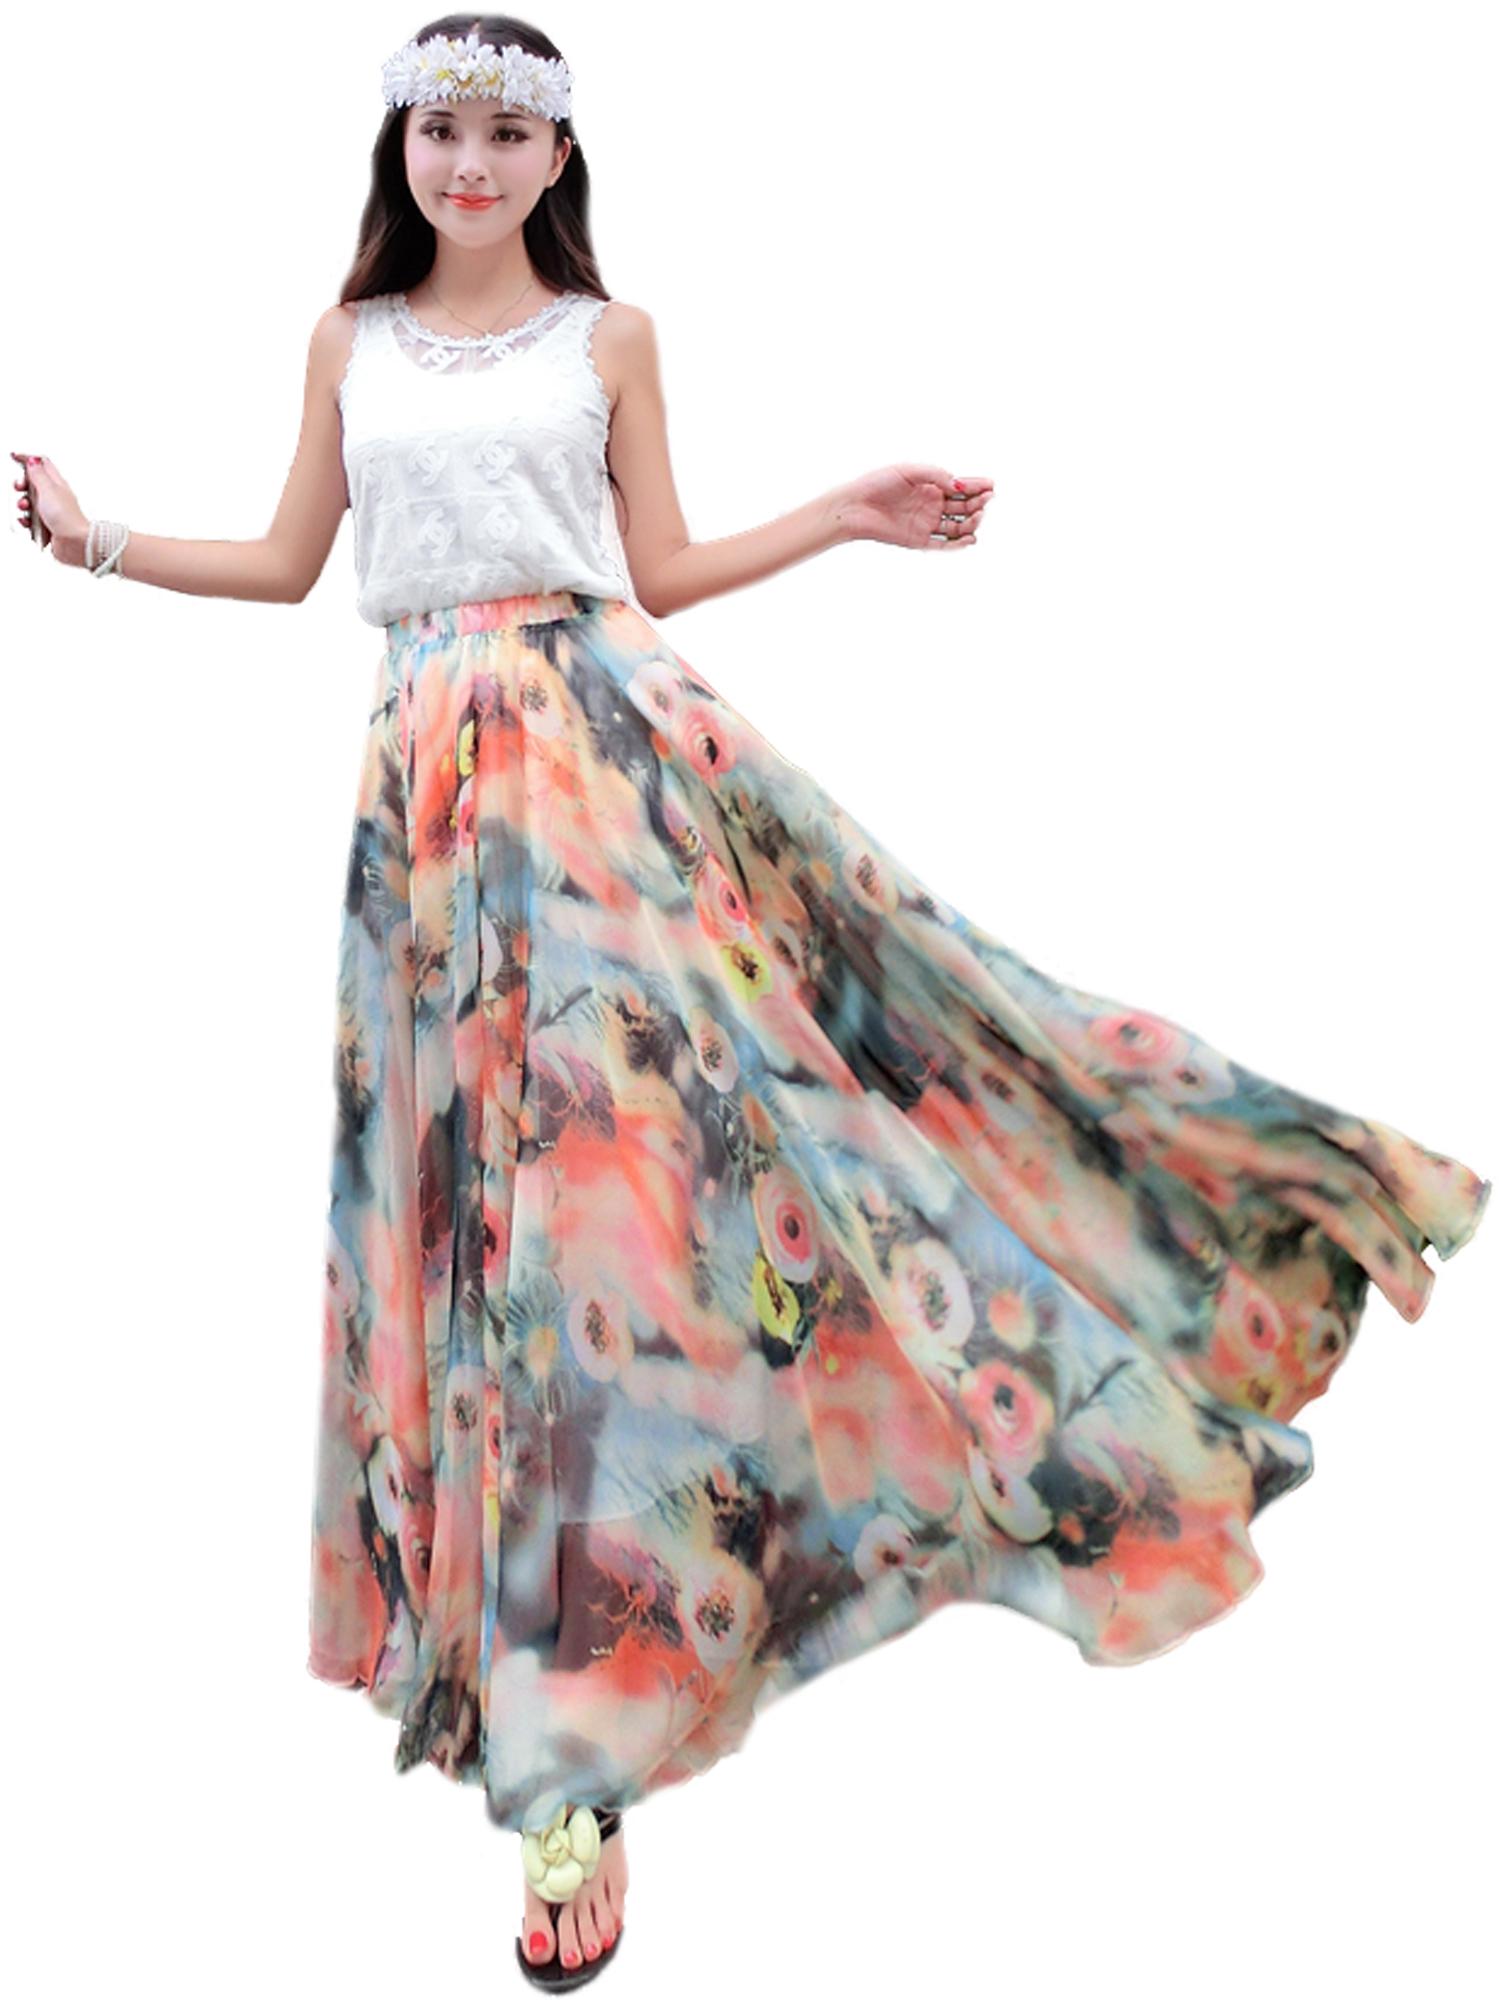 f1d31eaa1c32b Summer Chiffon Floral Lightweight Boho Summer Beach Long Maxi Skirt  Bridesmaid Dress on Luulla